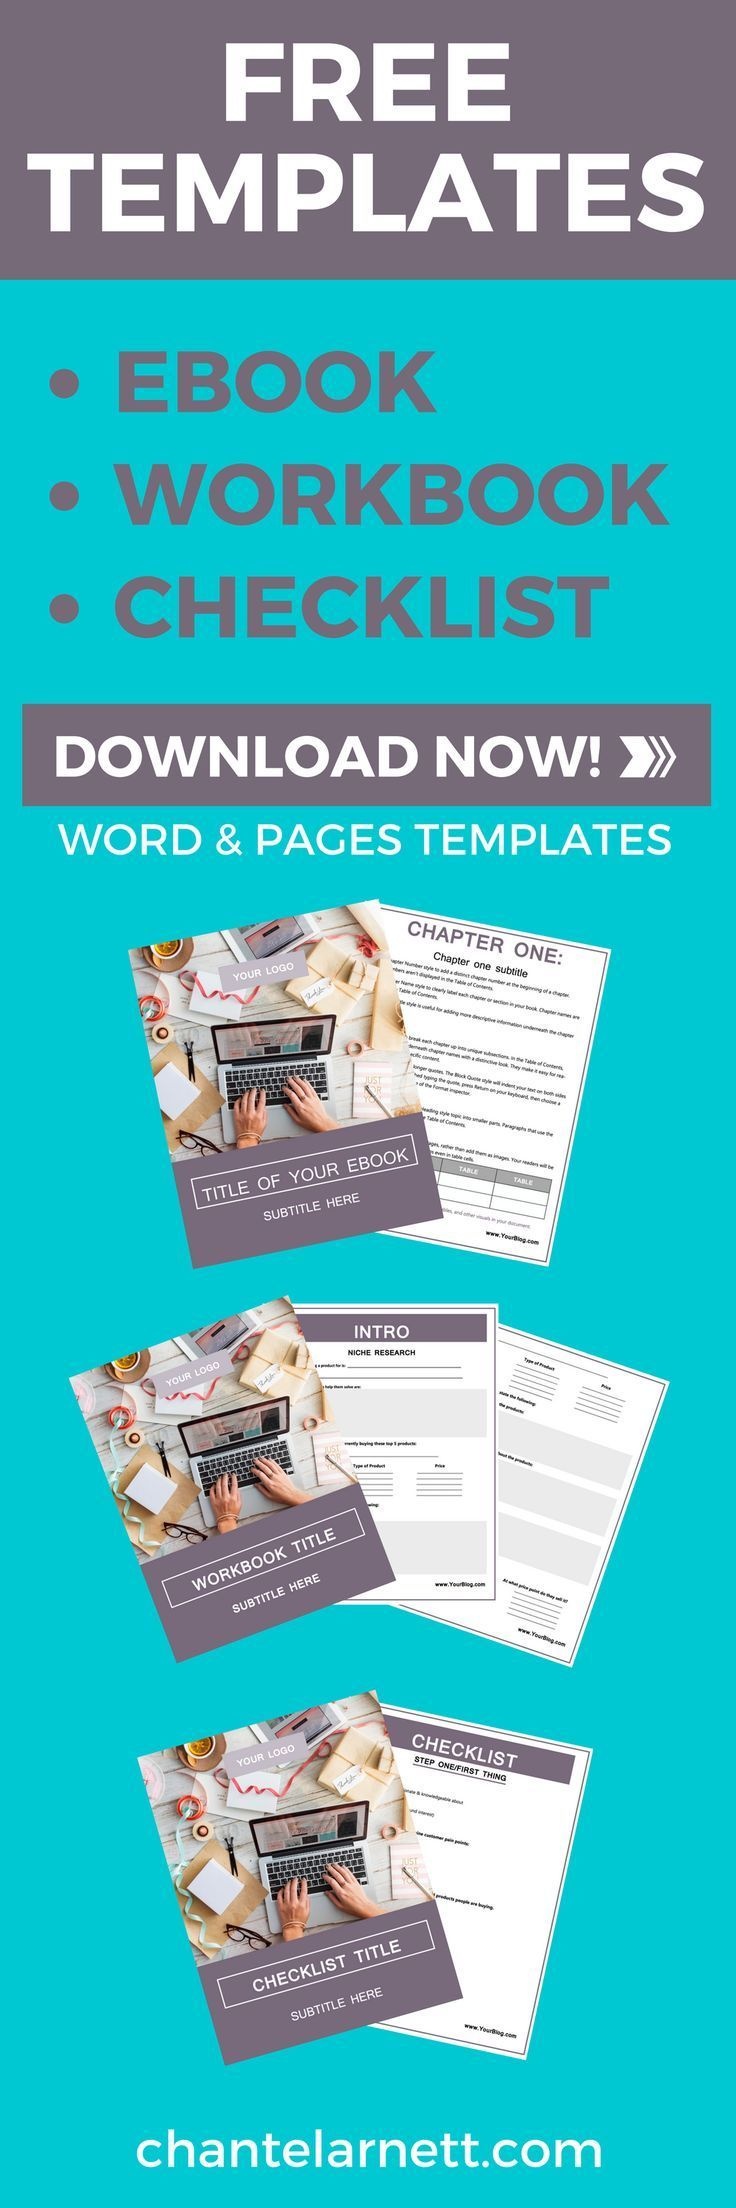 FREE EDITABLE TEMPLATES! Have you always wanted to create your own checklists, eBooks, and workbooks for your audience? But you don't have the time to create them from scratch? Do you need an awesome lead magnet for your email list but you're not that comfortable with design? Then these three editable templates are perfect for you! via @chantel_arnett ebook template | workbook template | checklist template